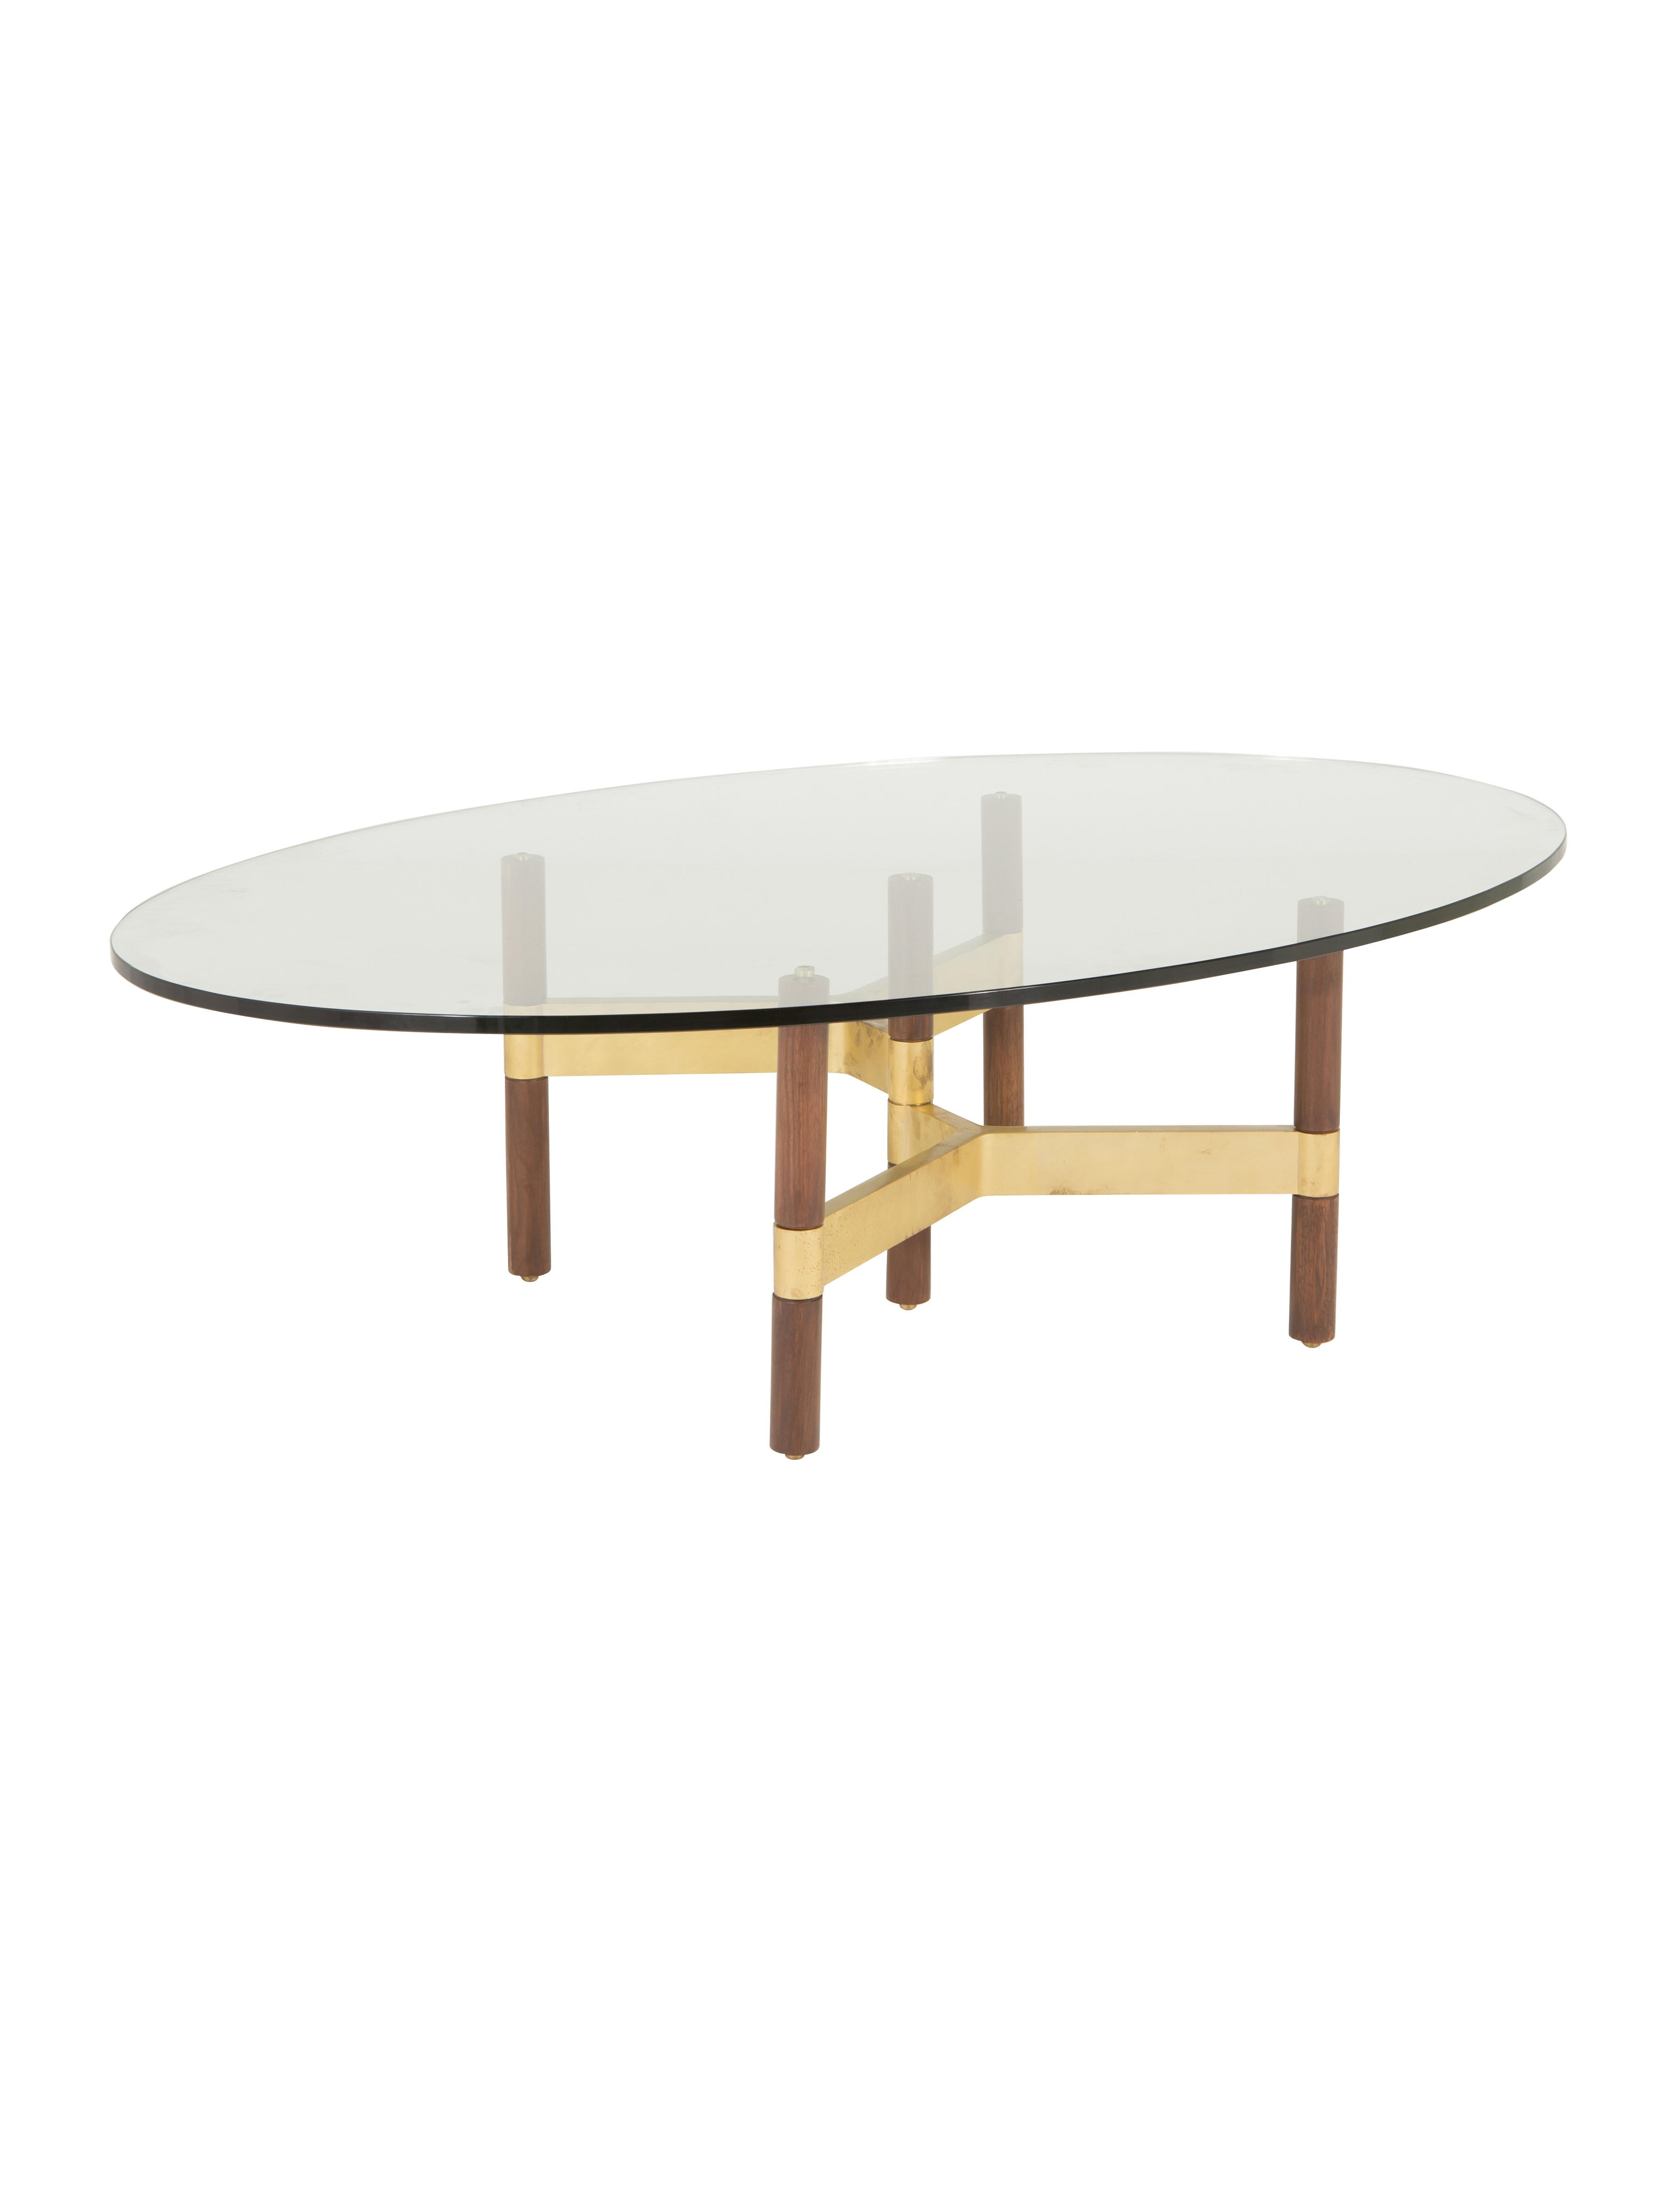 design within reach helix oval coffee table furniture